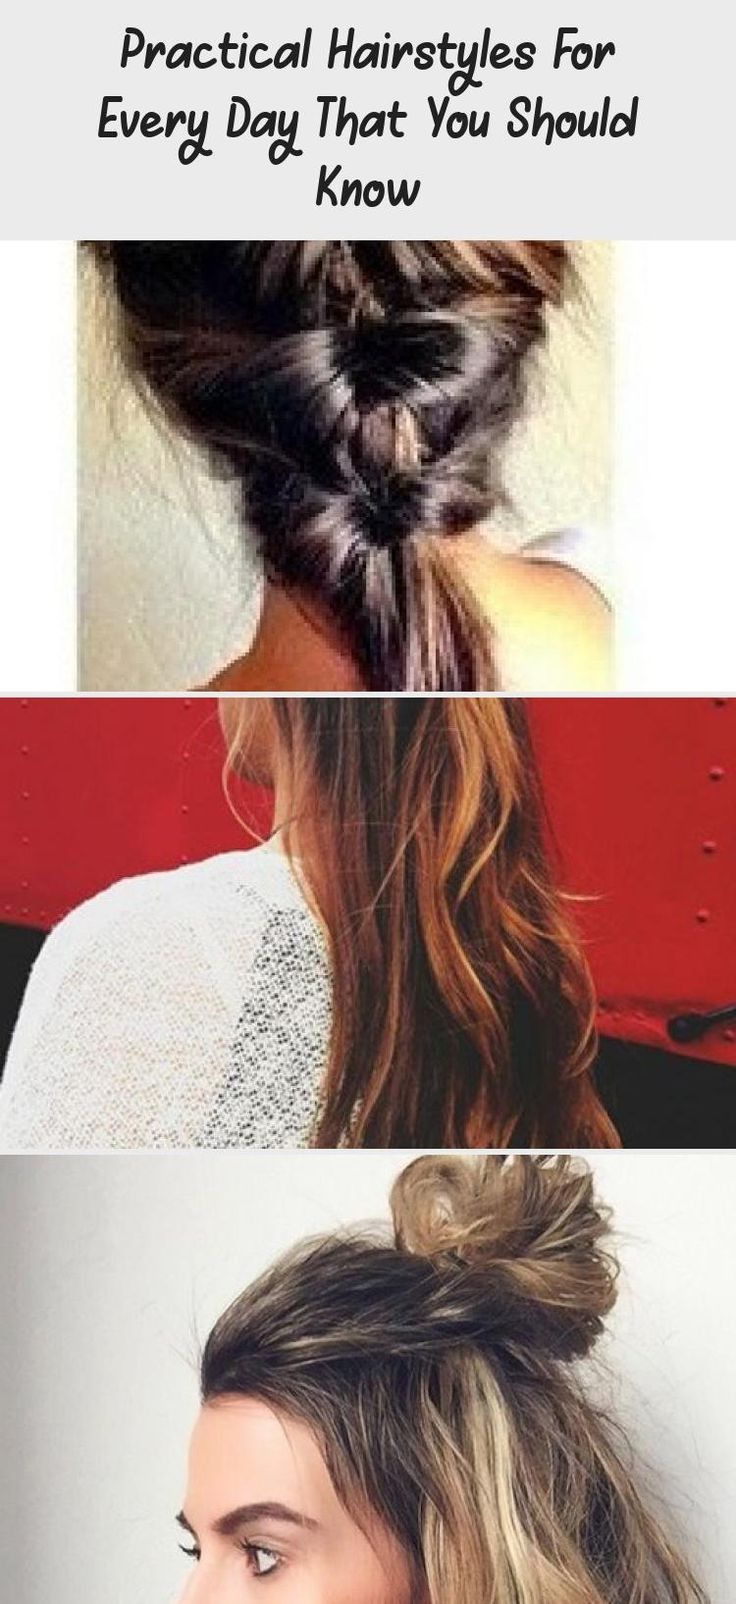 Practical Hairstyles For Every Day That You Should Know  #every #hairstyles #practical #should #summerhairstylesWithBangs #summerhairstyles2018 #summerhairstylesHaircuts #summerhairstylesMen #summerhairstylesBuns